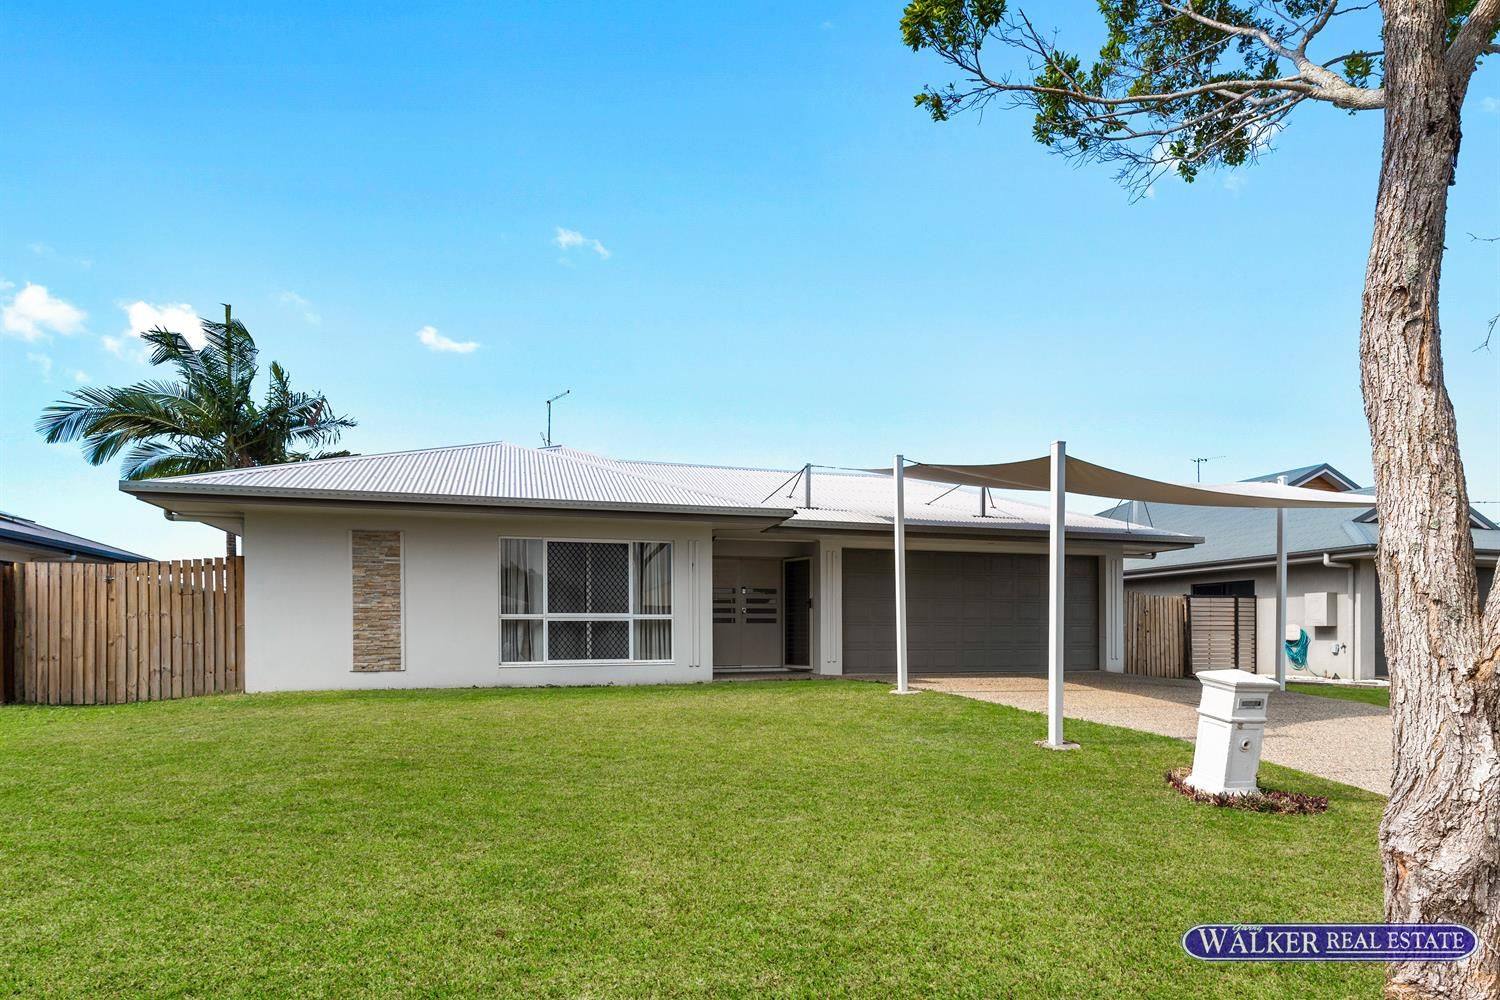 4 bedrooms House in 11 Hopkins Street WHITE ROCK QLD, 4868